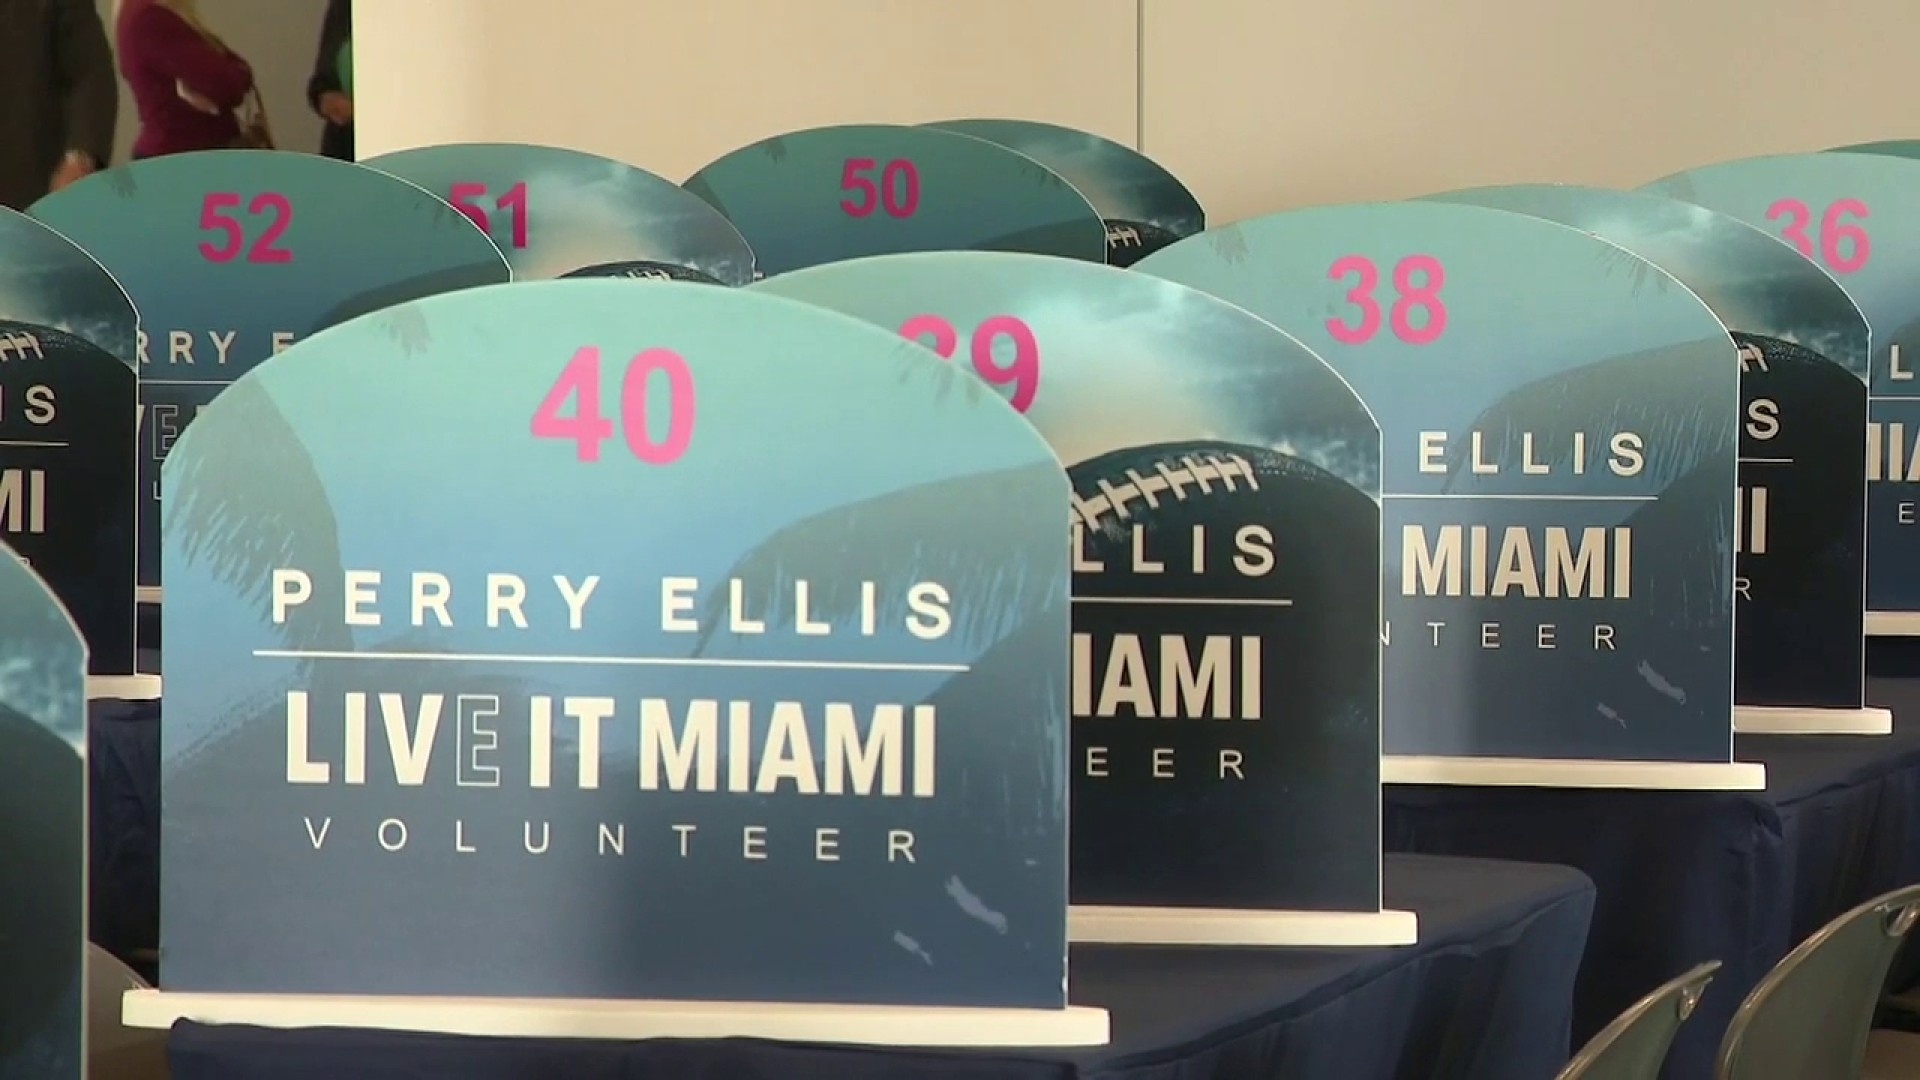 We Should Have A Super Bowl Every Year Here,' Dan Marino Says with Volunteer For Miami Super Bowl